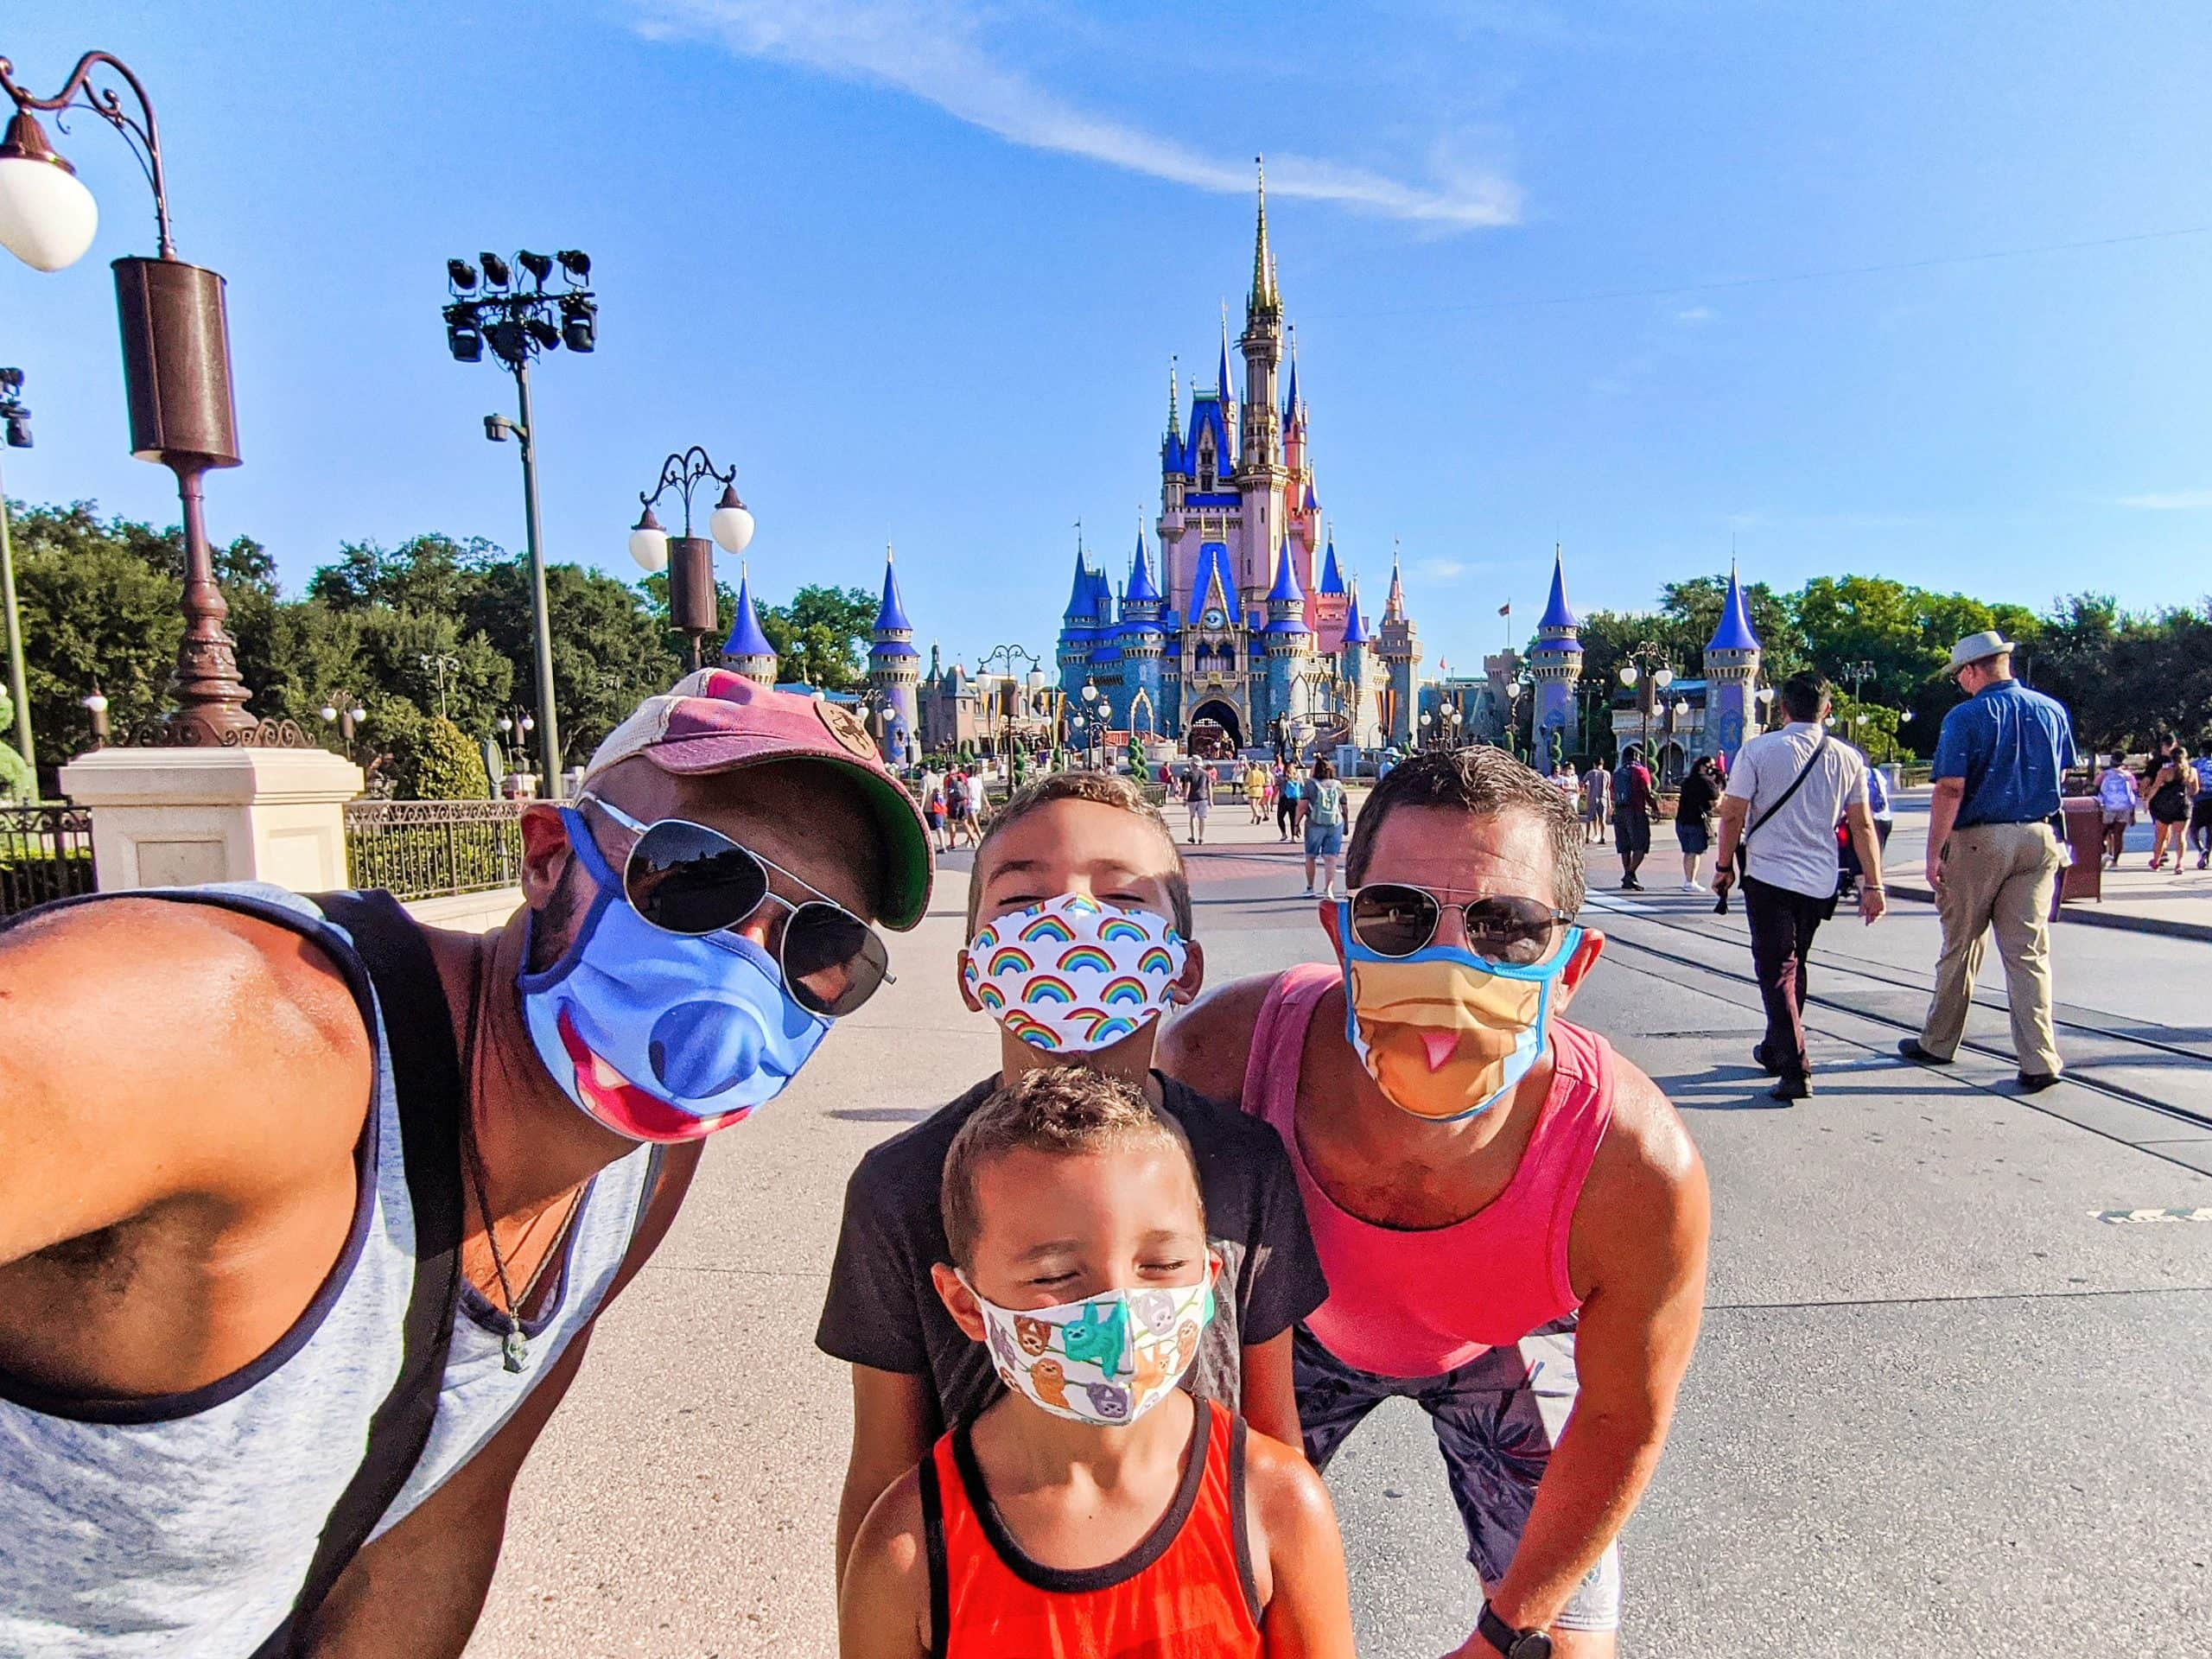 Covid Travel - Disney World - FLorida